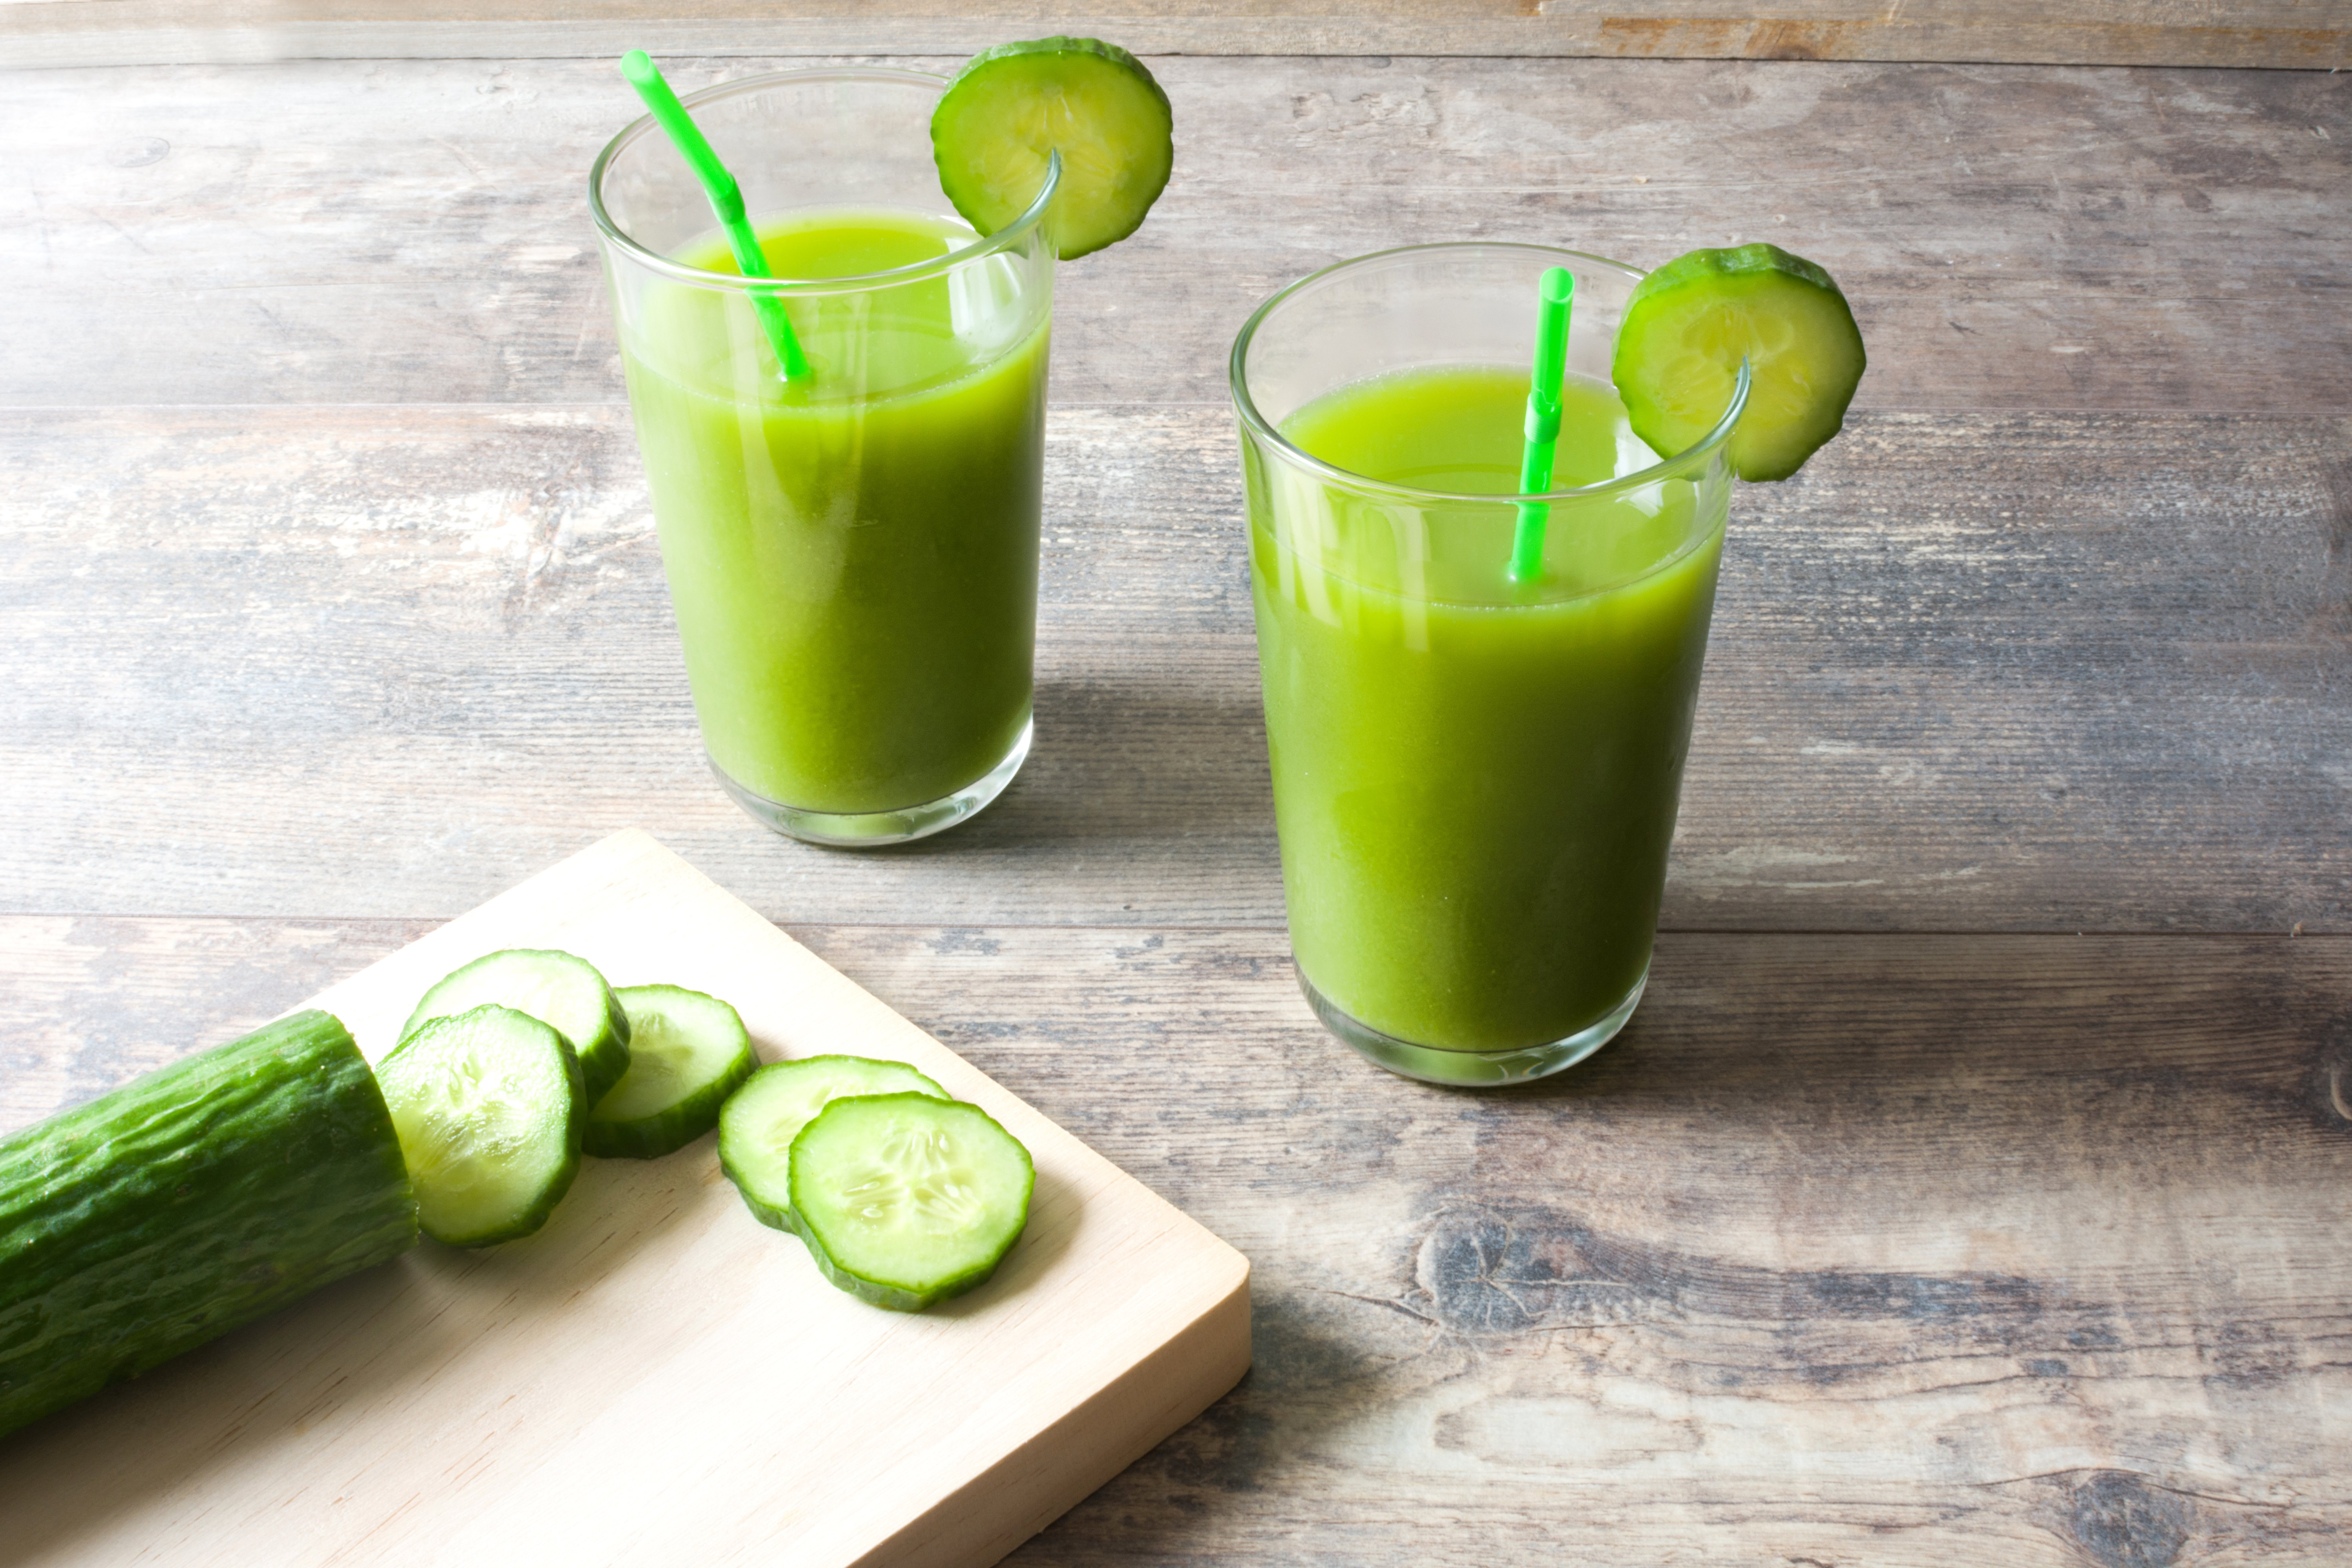 Is Cucumber Juice the New Celery Juice? Here's What a Dietitian Thinks About This Trend